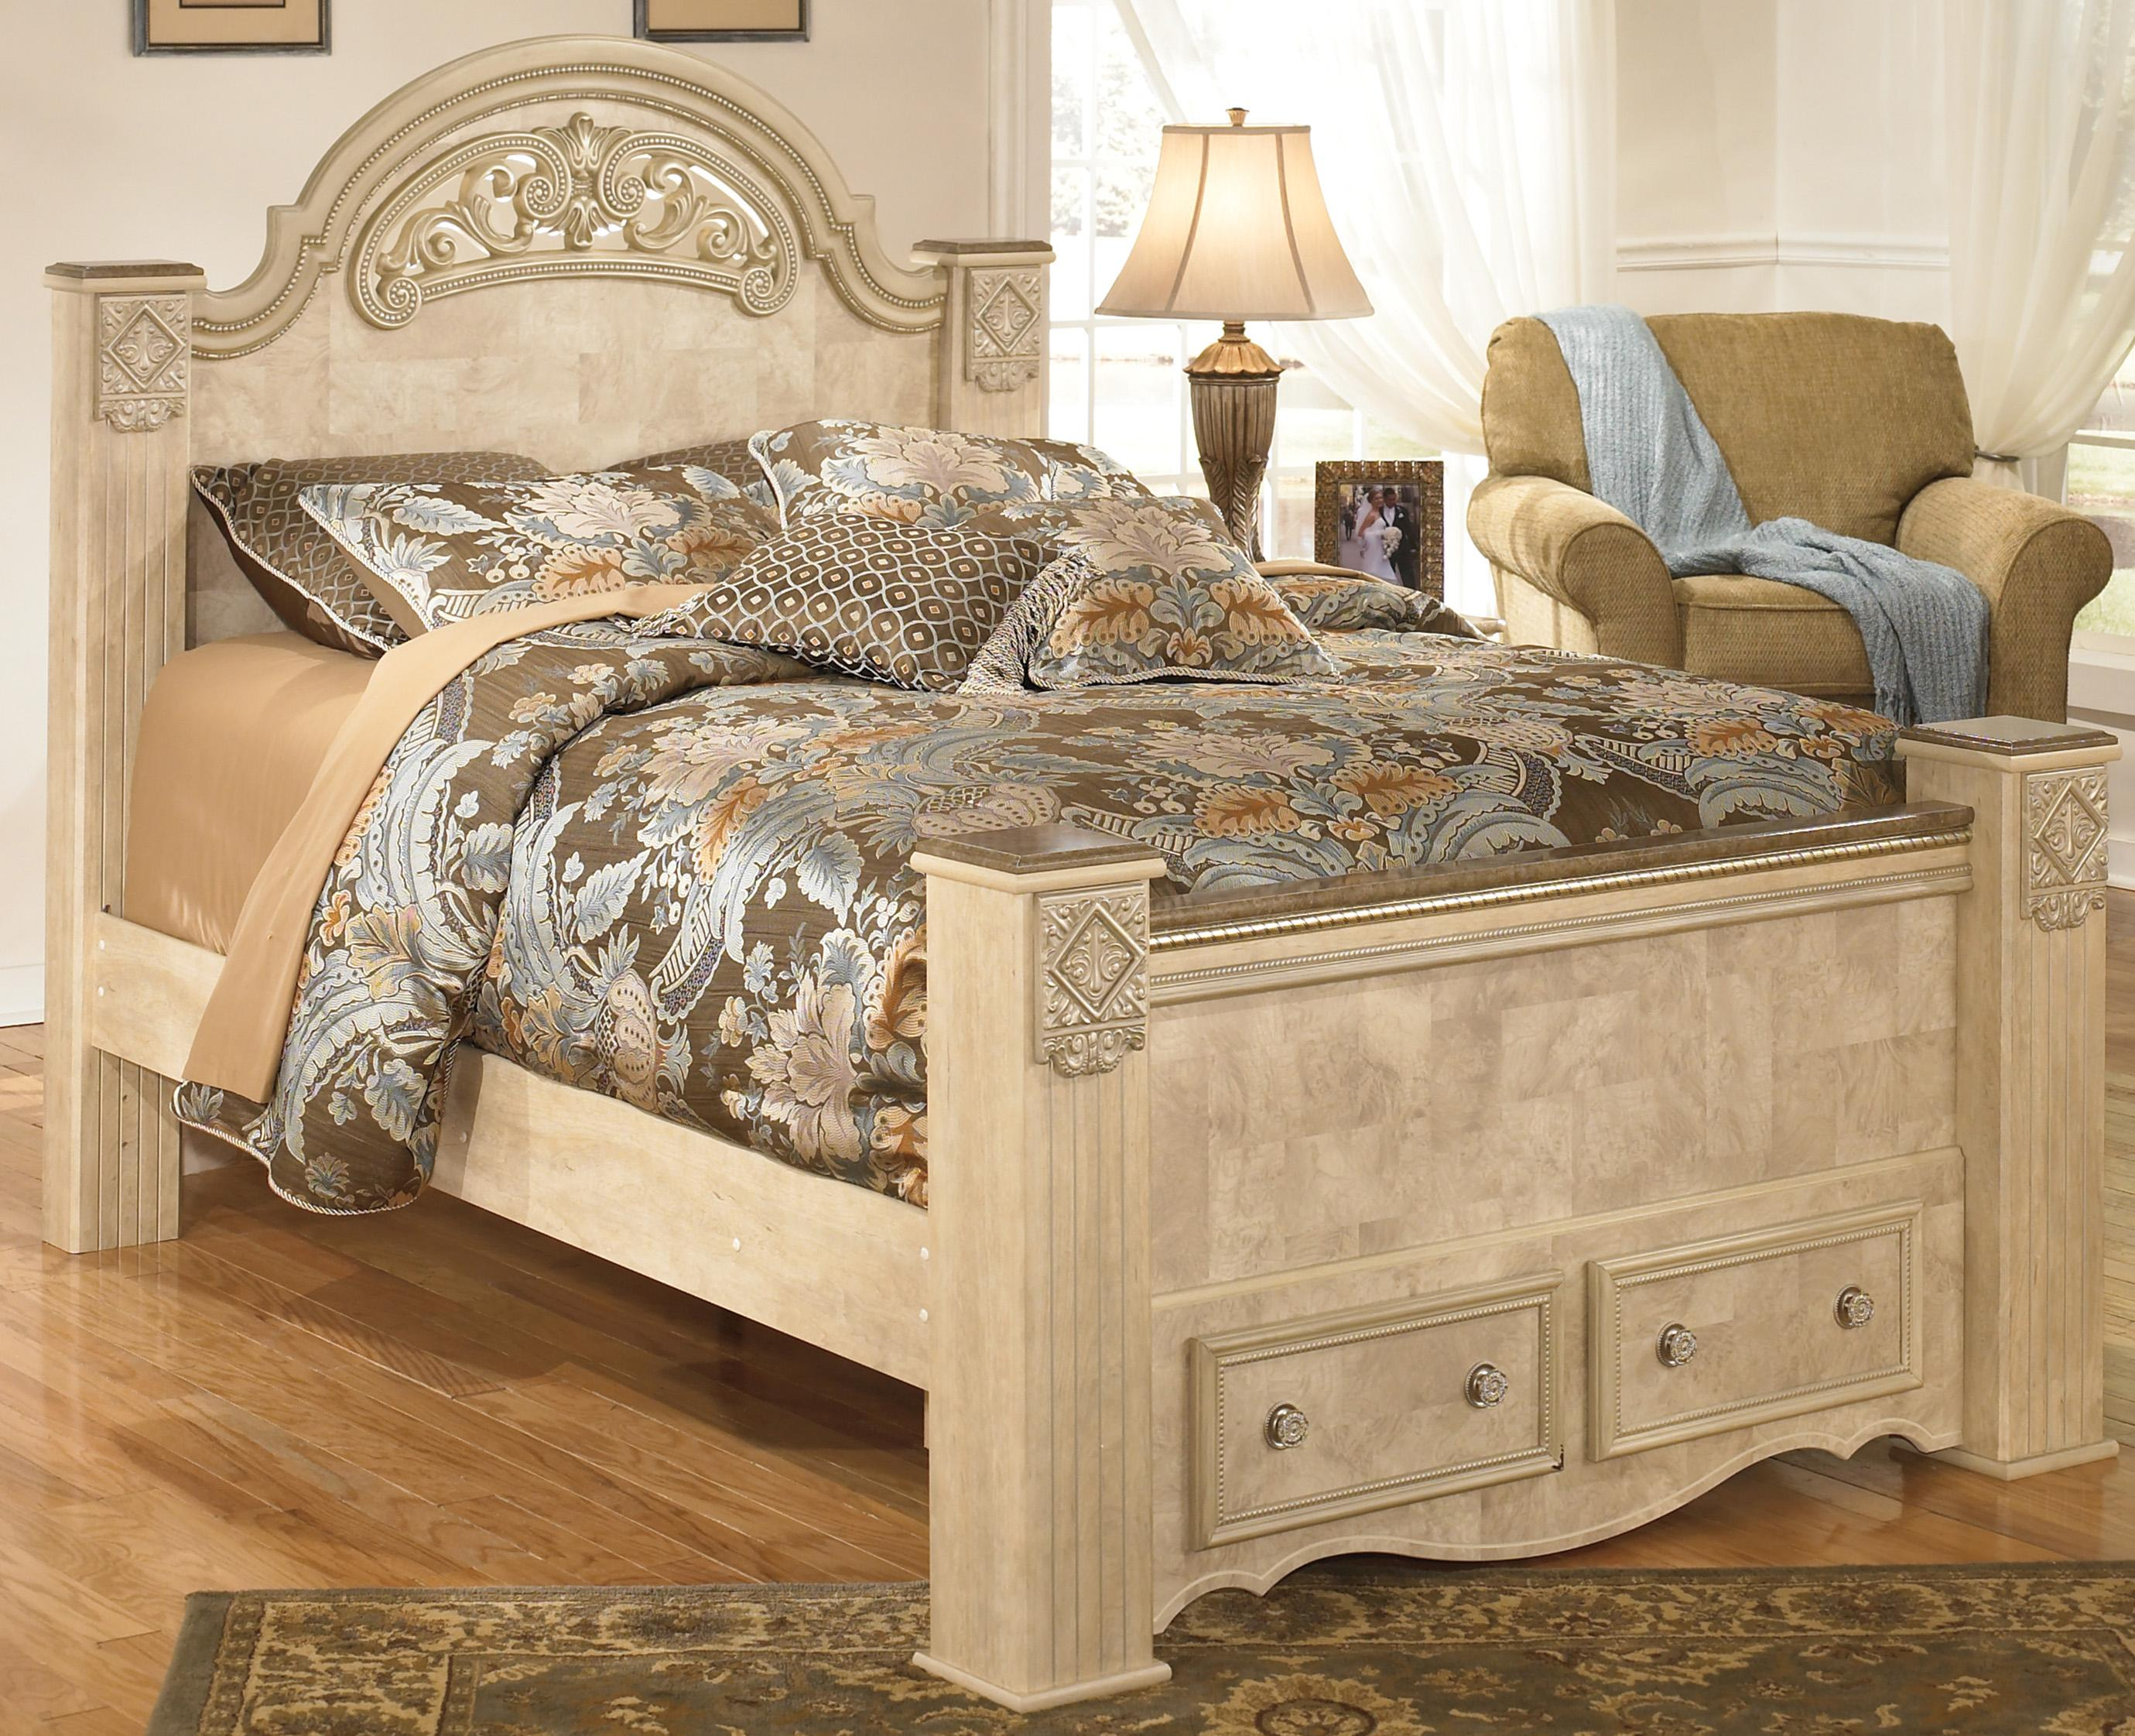 Signature Design by Ashley Saveaha King Poster Storage Bed - Item Number: B346-68+66S+70+99